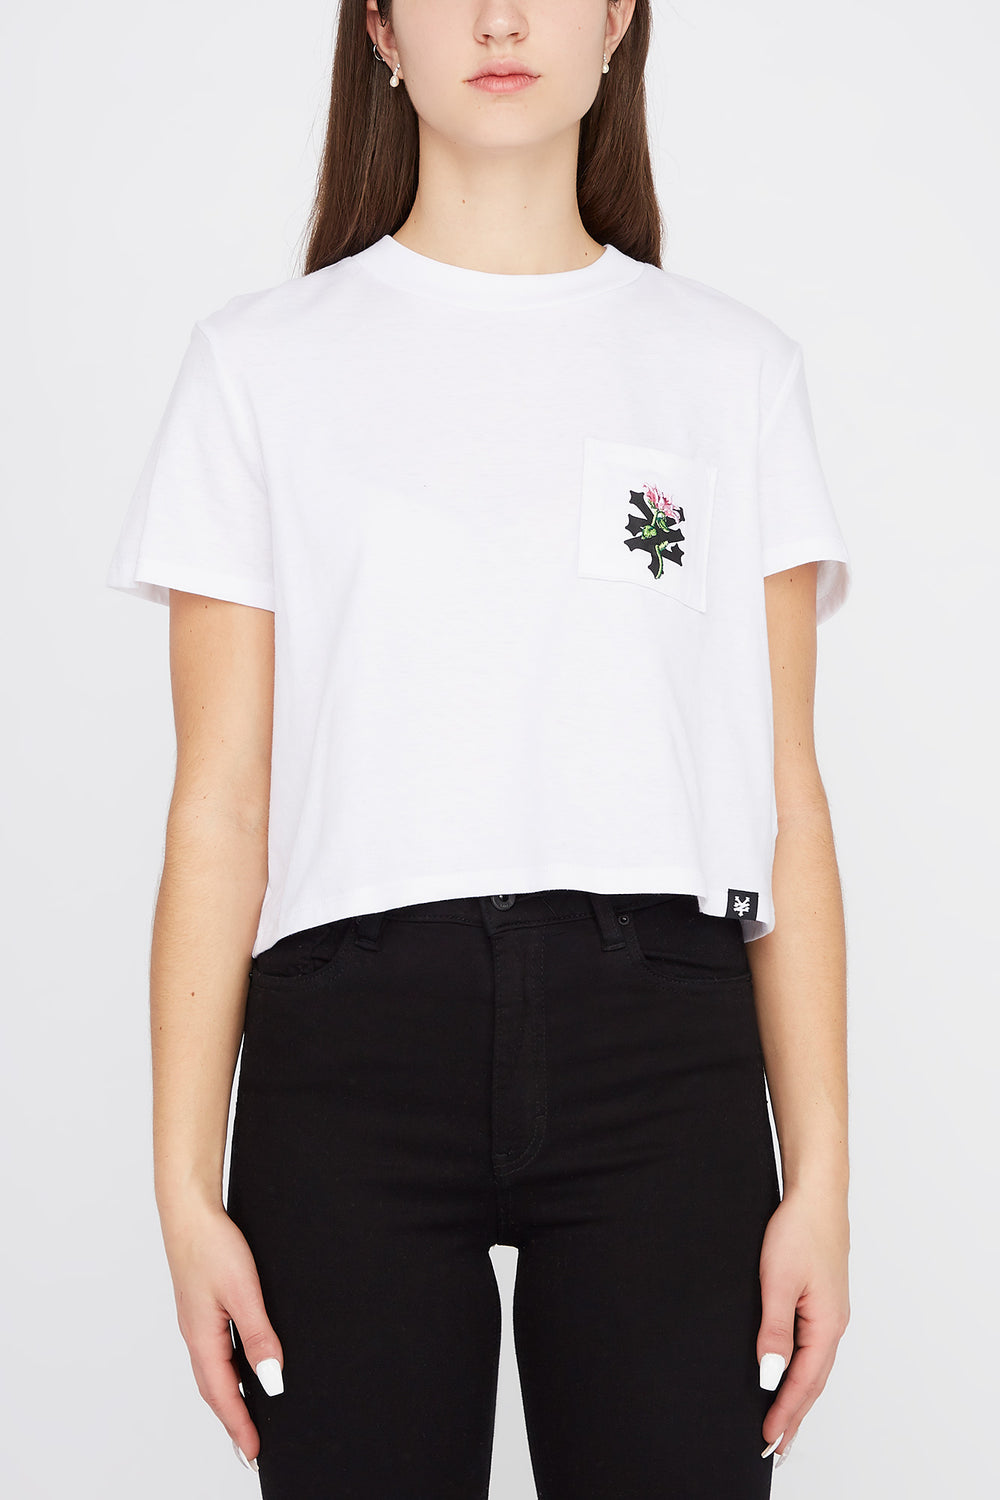 Zoo York Womens Rose Logo Pocket Cropped T-Shirt White